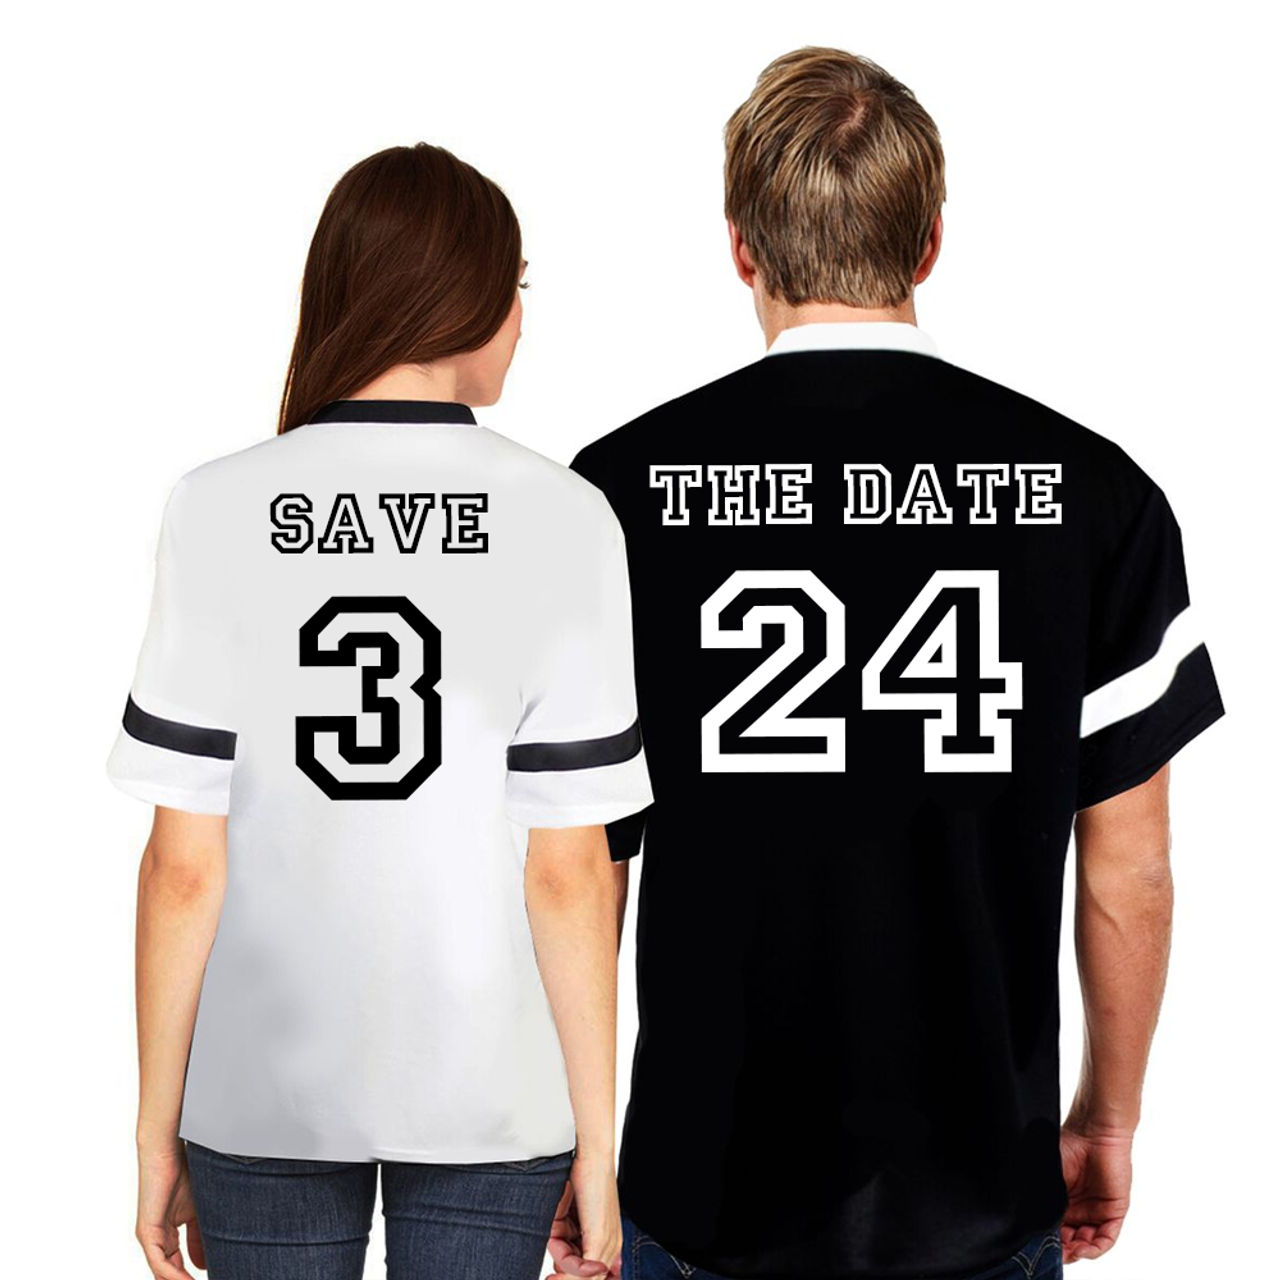 0aaa446559 Couple Matching Save the Date Jersey